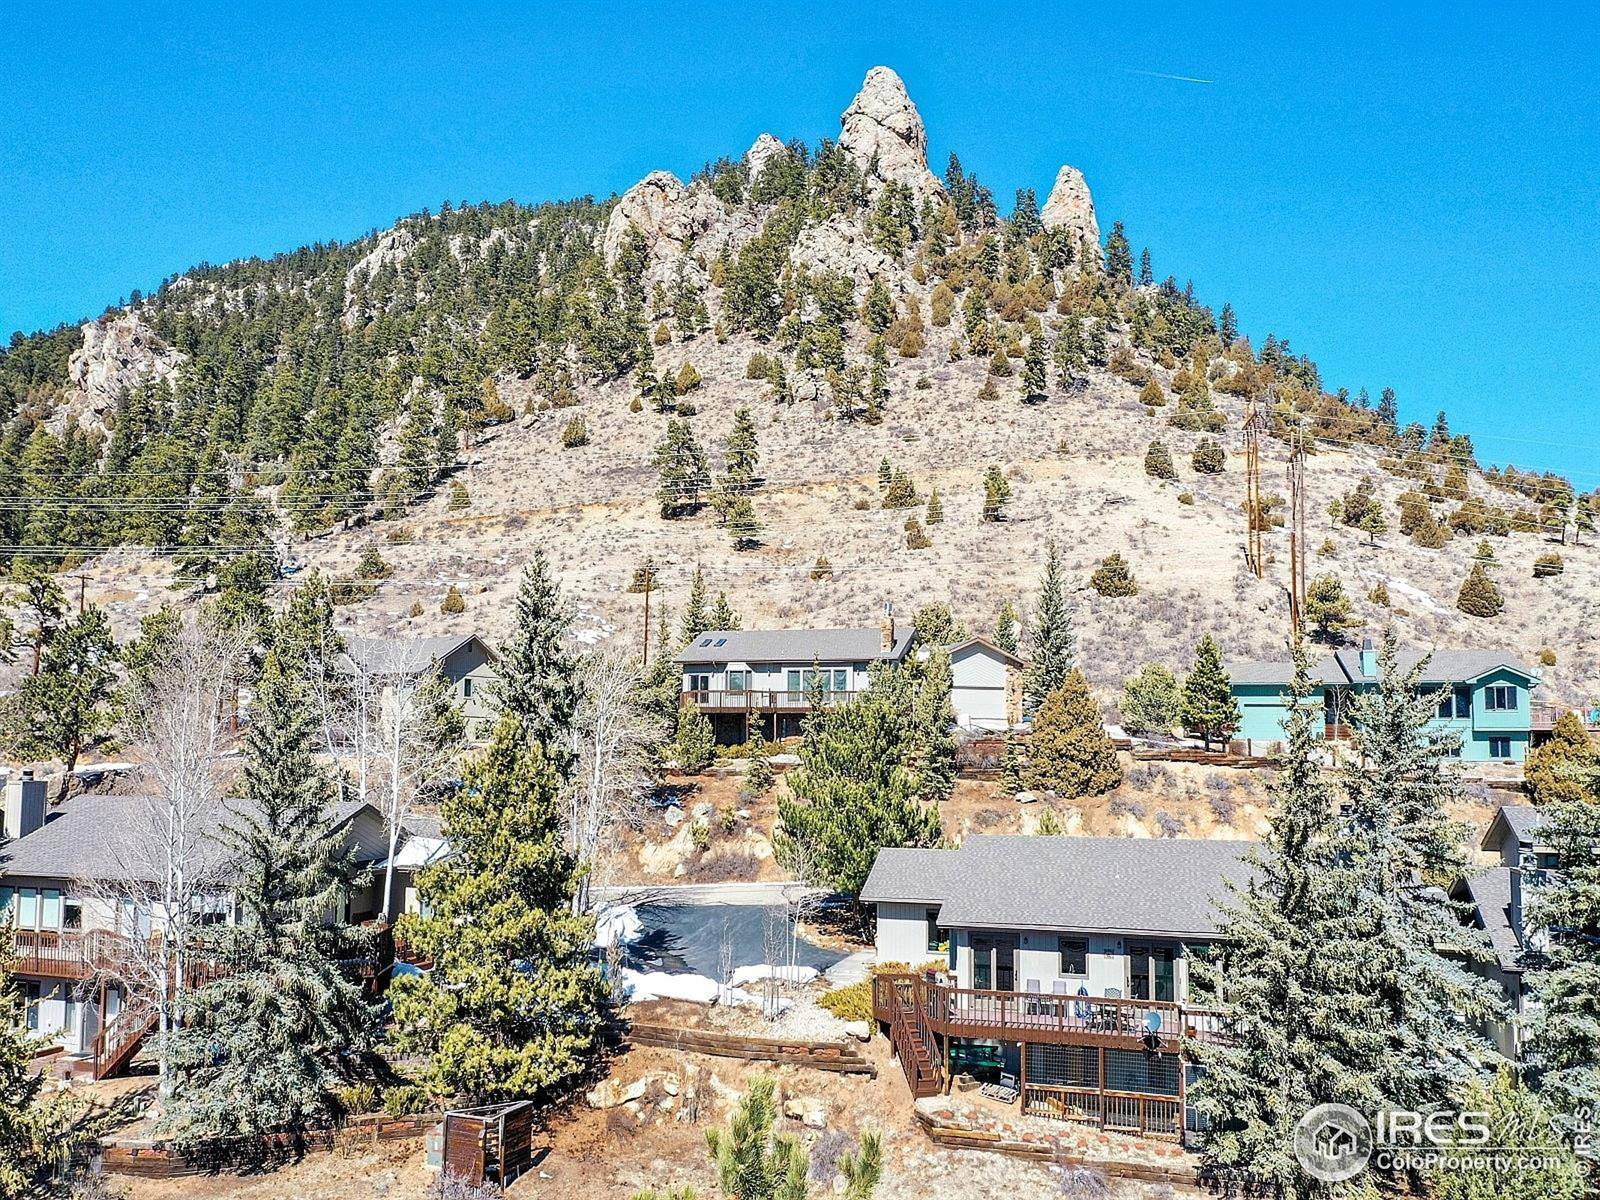 View details, map and photos of this single family property with 4 bedrooms and 3 total baths. Sold 540 Devon Drive Estes Park Co 80517 Prospect Mountain 3 Beds 1 Full Bath 2 3 4 Baths 1 Half Bath 650 000